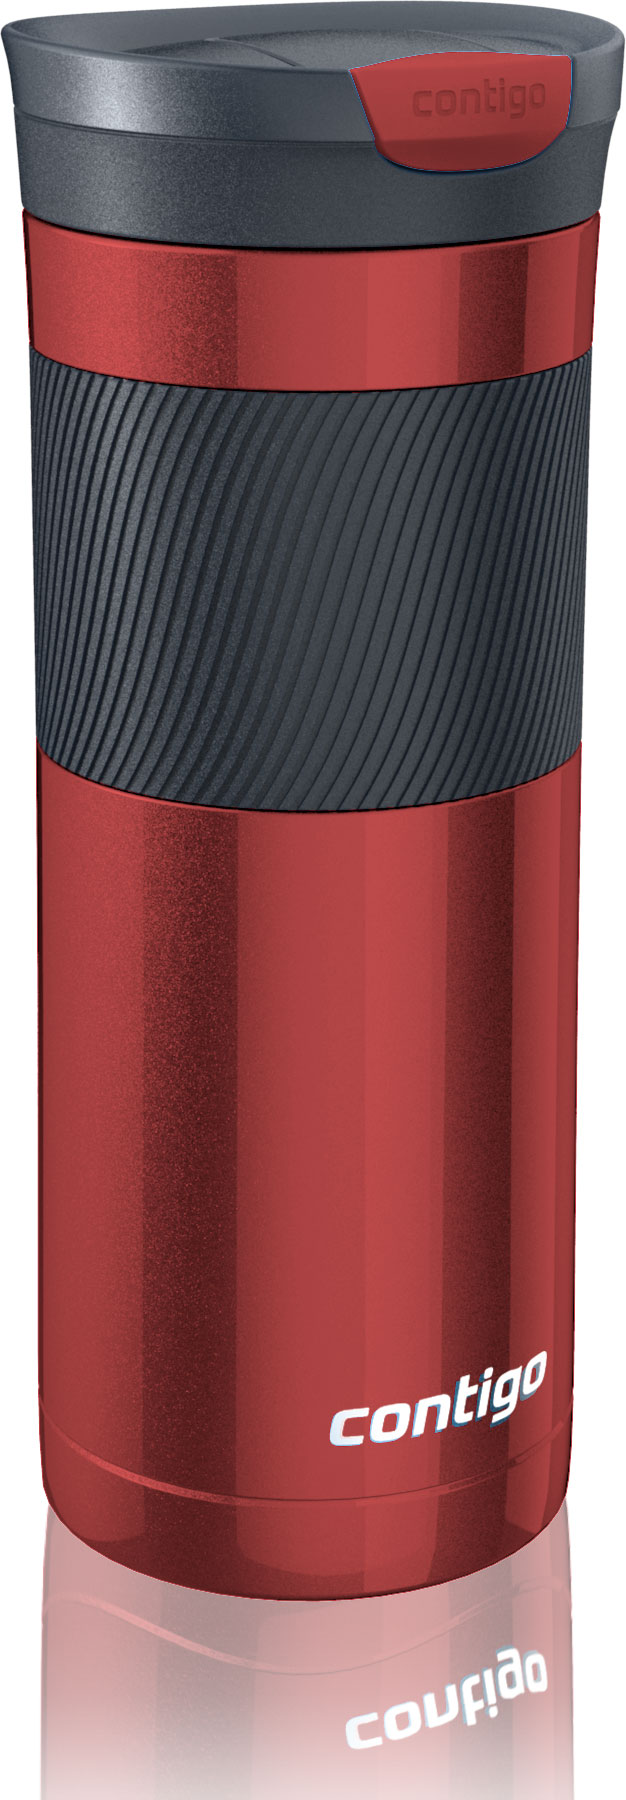 Contigo - Byron Snapseal - 20 Oz. - Red   SKU: 71405